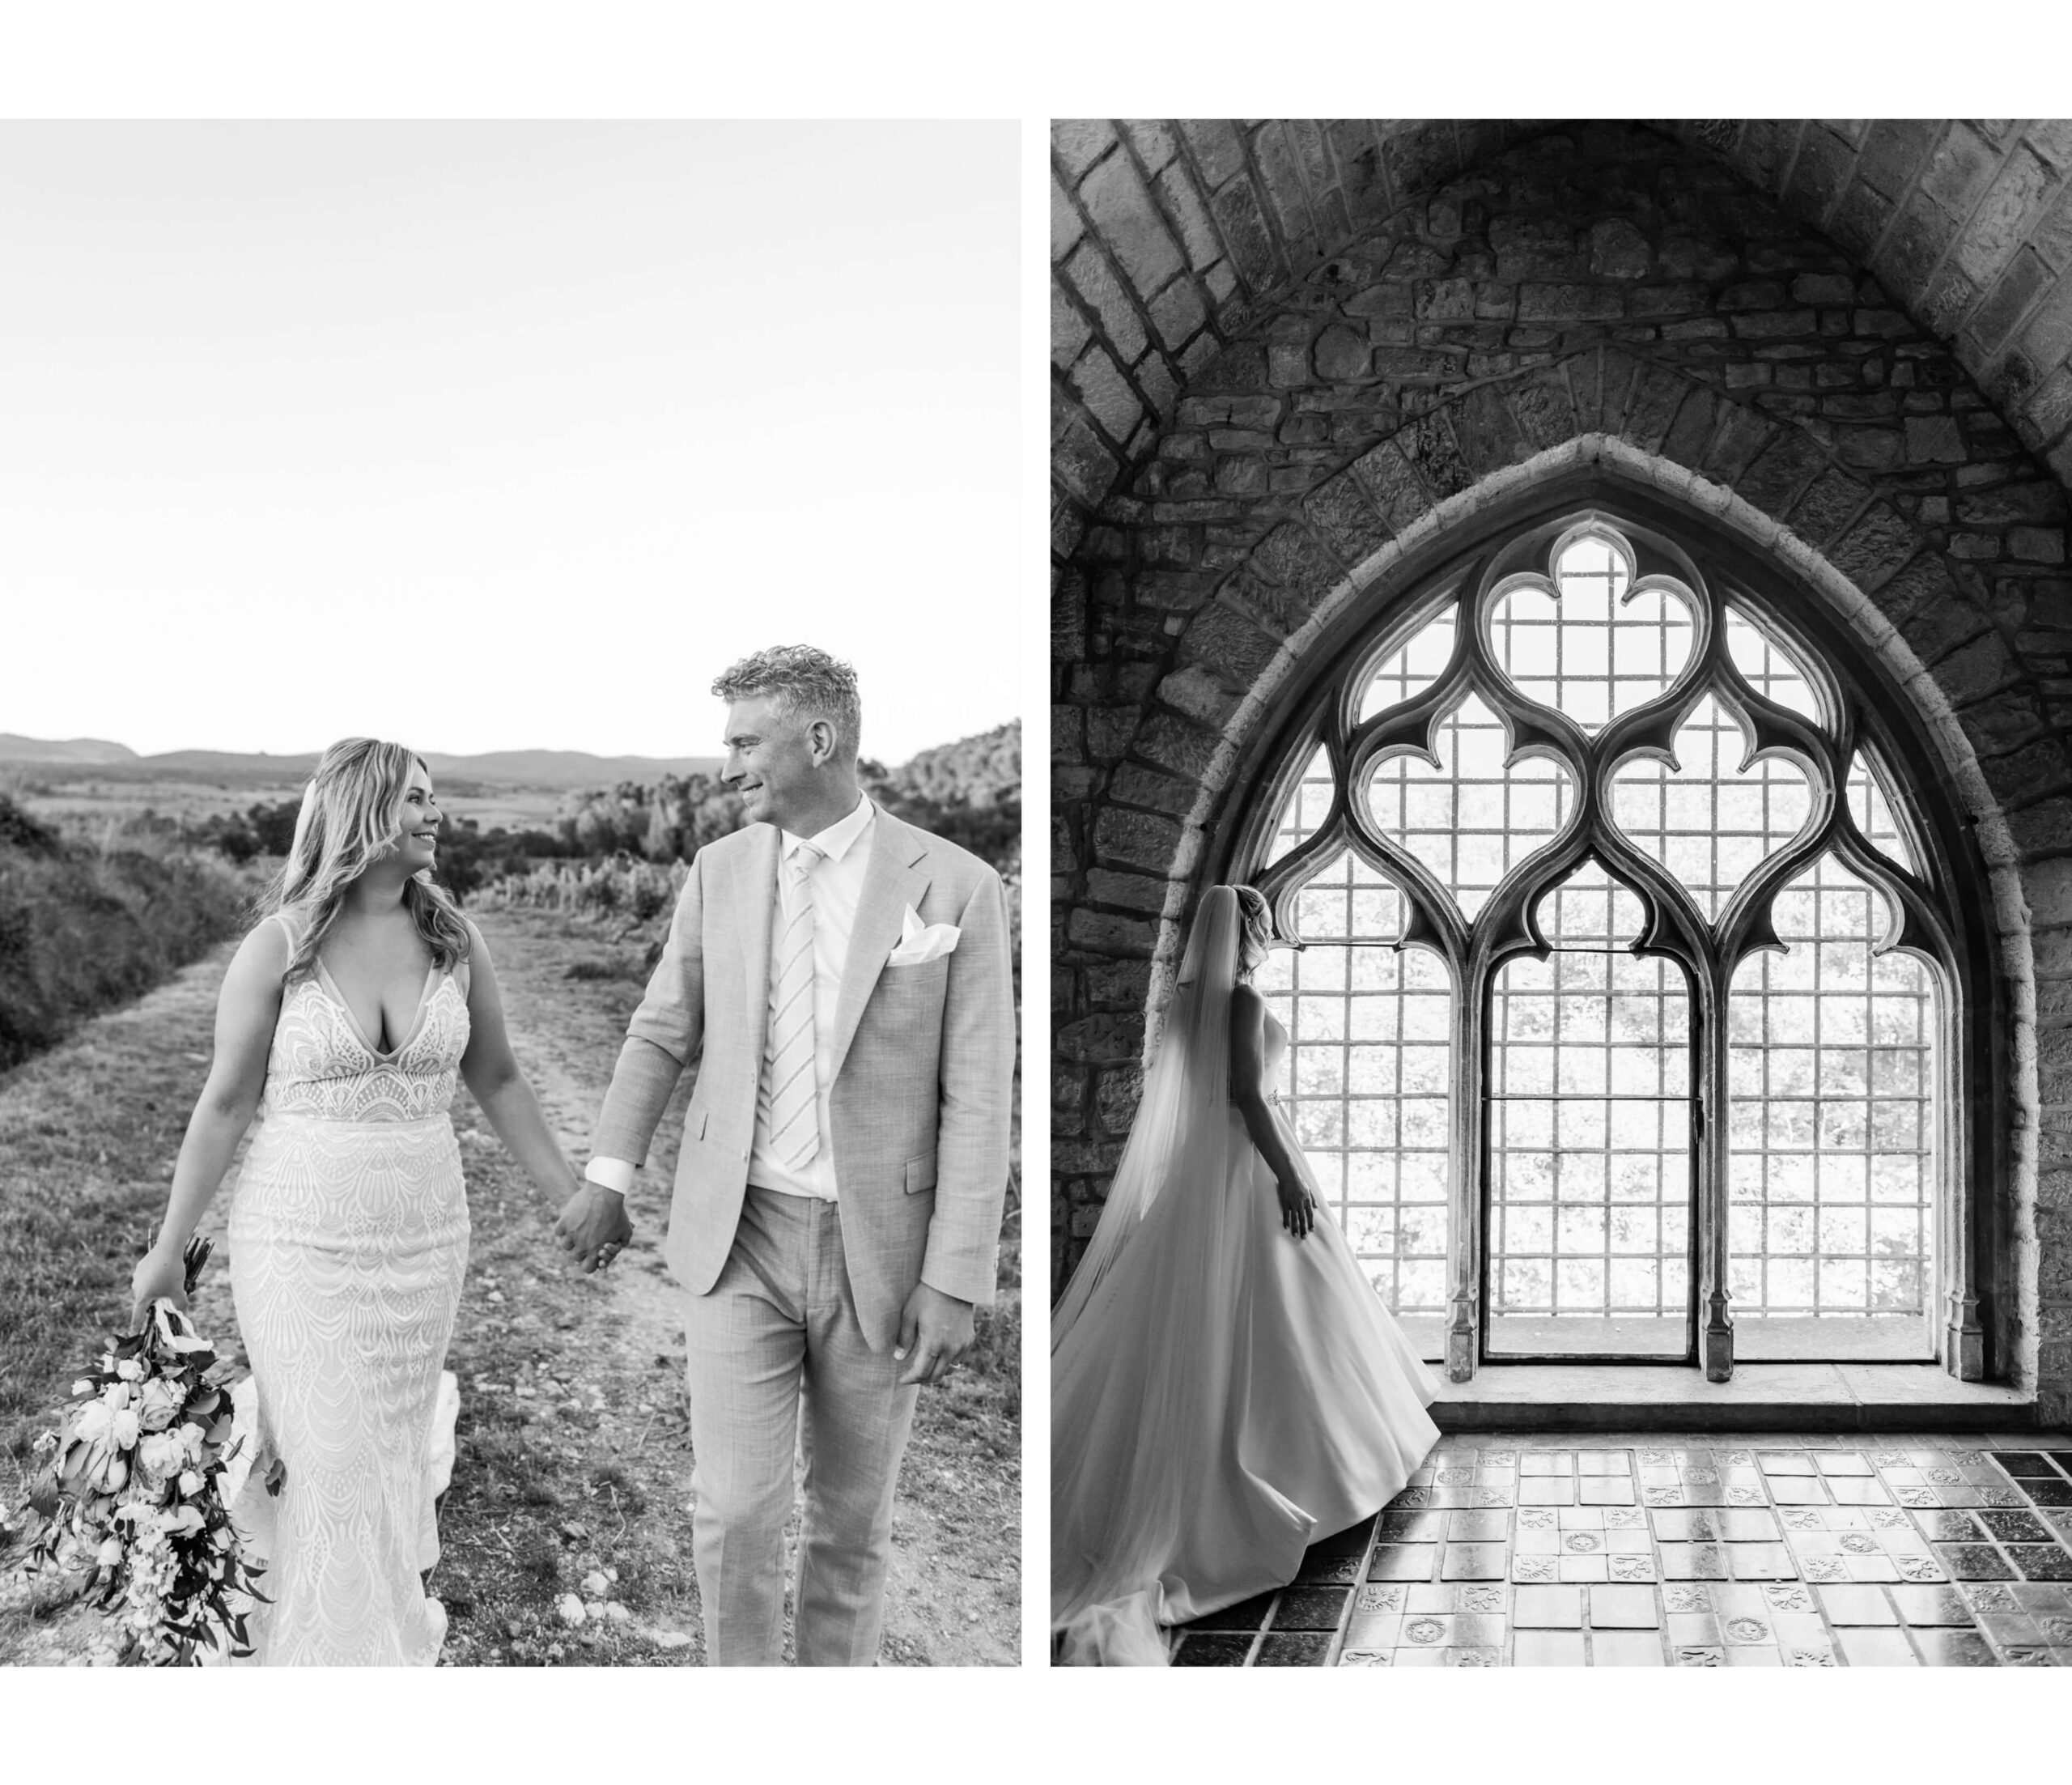 Black and white wedding photography in France